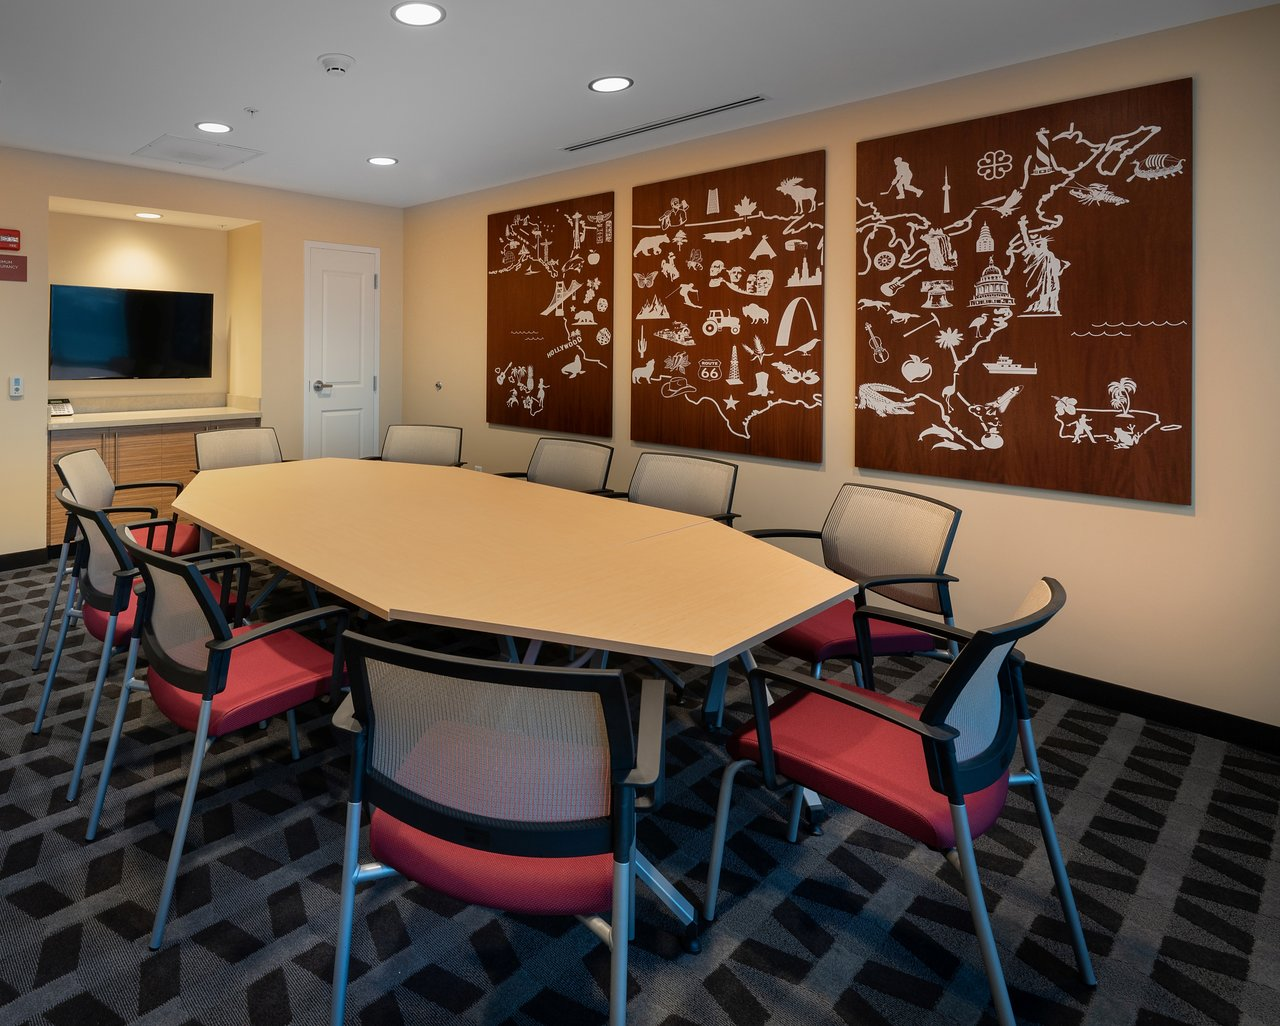 TOWNEPLACE SUITES BY MARRIOTT MILWAUKEE OAK CREEK $94